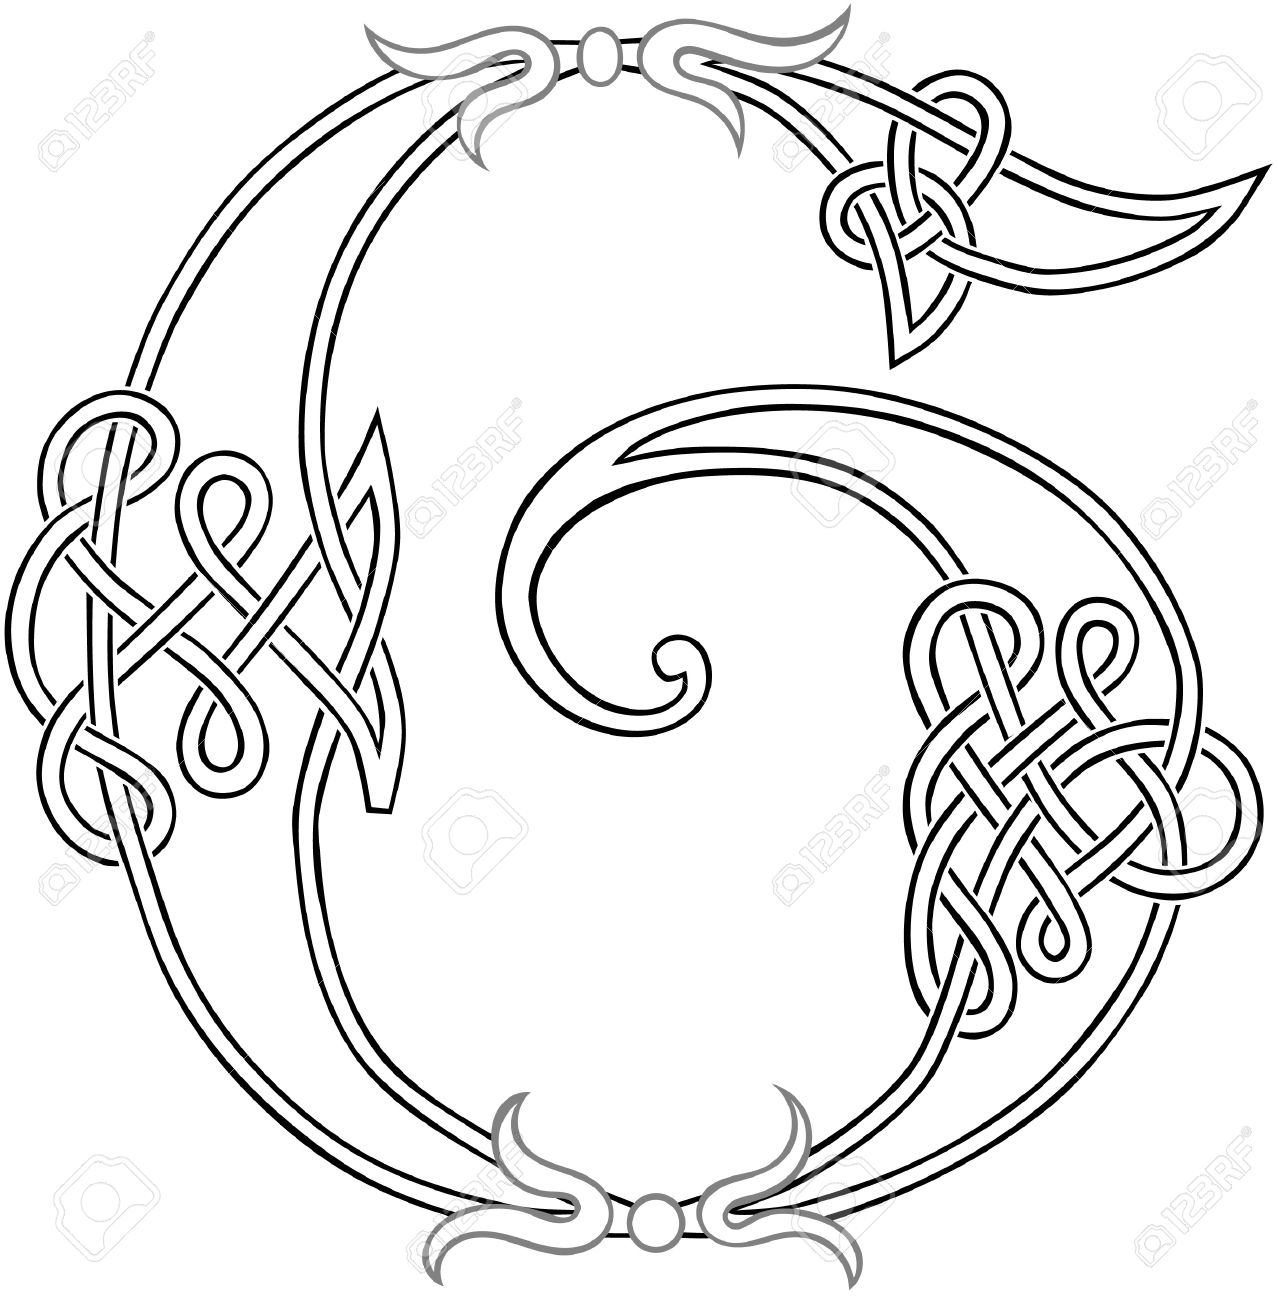 A Celtic Knot Work Capital Letter G Stylized Outline Royalty Free